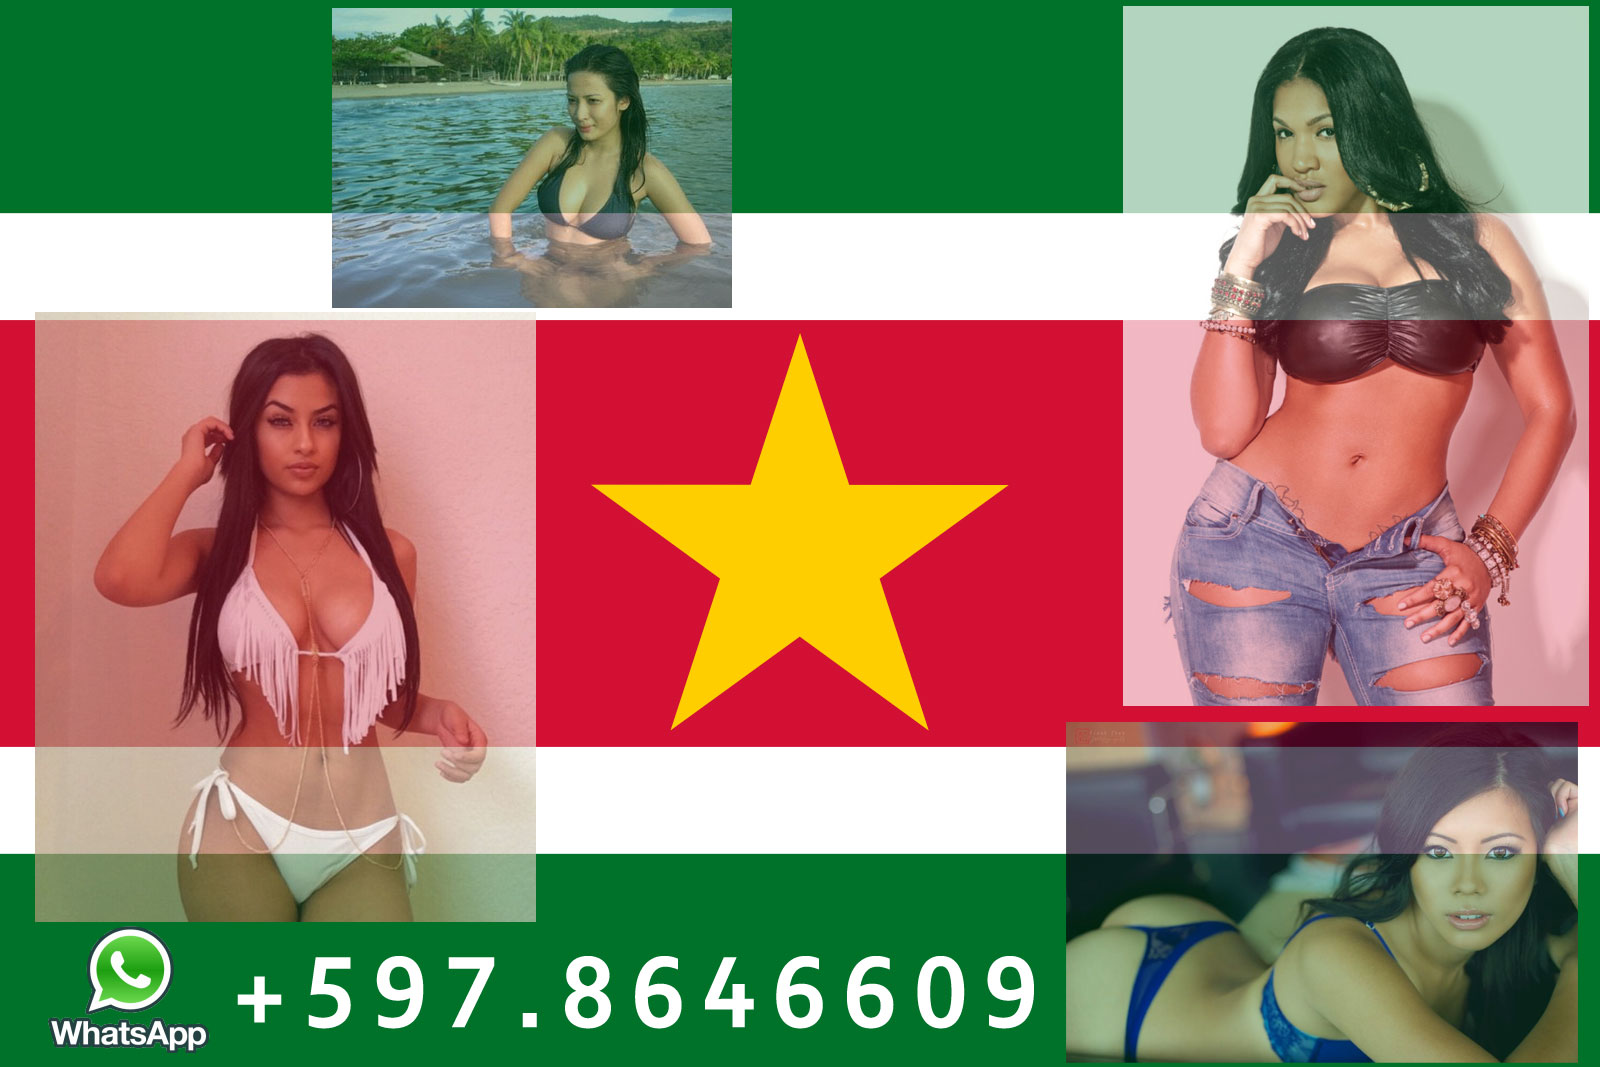 Escort Suriname: Meet a nice lady in Paramaribo